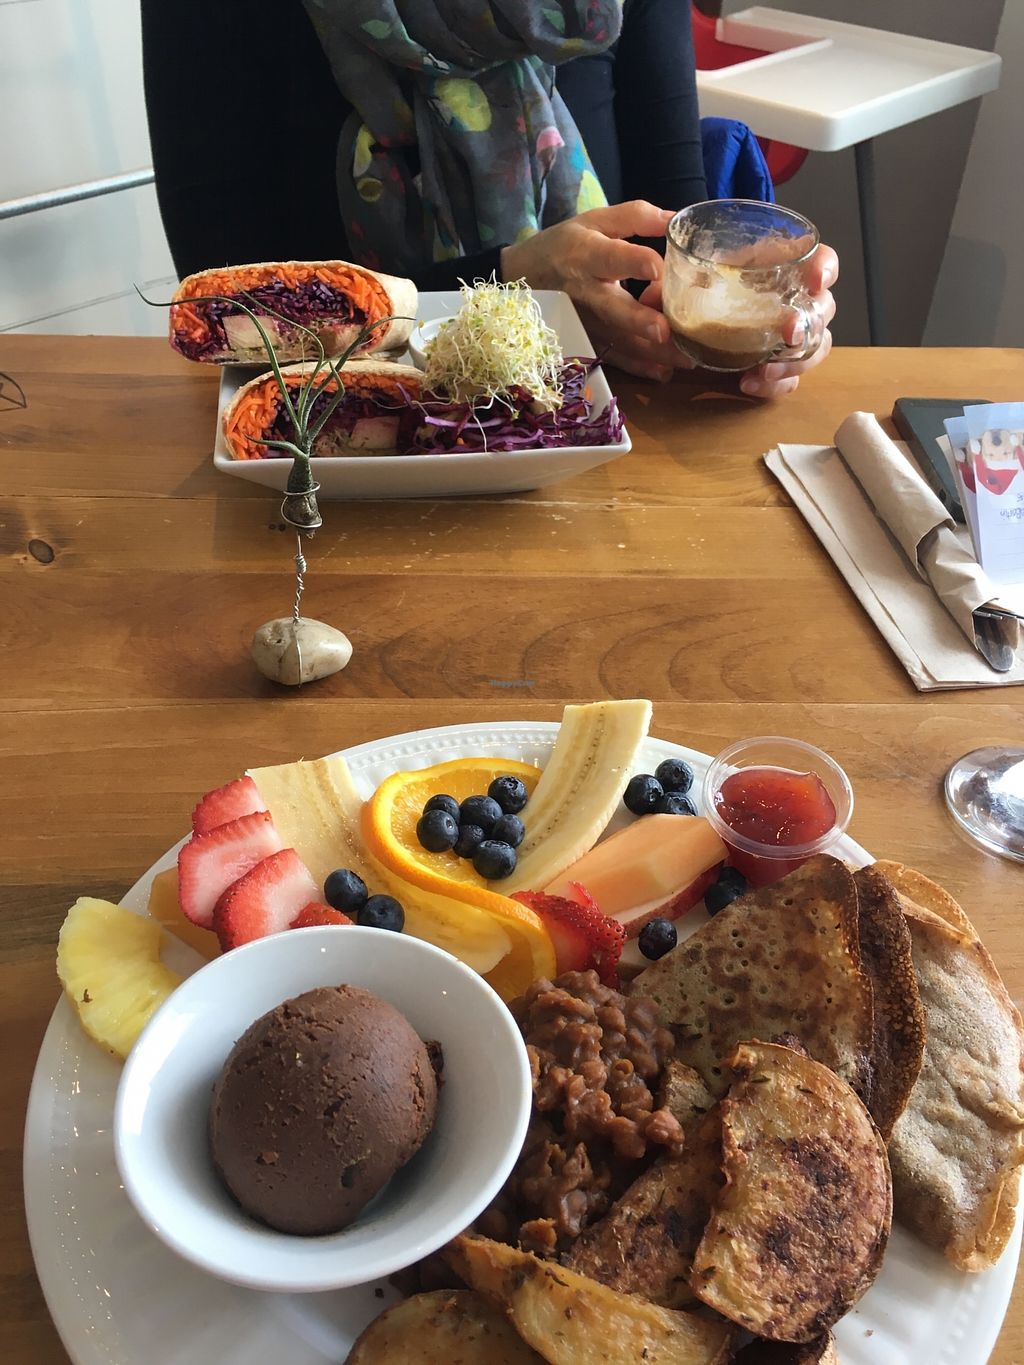 "Photo of Vegecafe Vertuose  by <a href=""/members/profile/jujubouchard"">jujubouchard</a> <br/>Assiette brunch <br/> April 9, 2018  - <a href='/contact/abuse/image/80985/382723'>Report</a>"